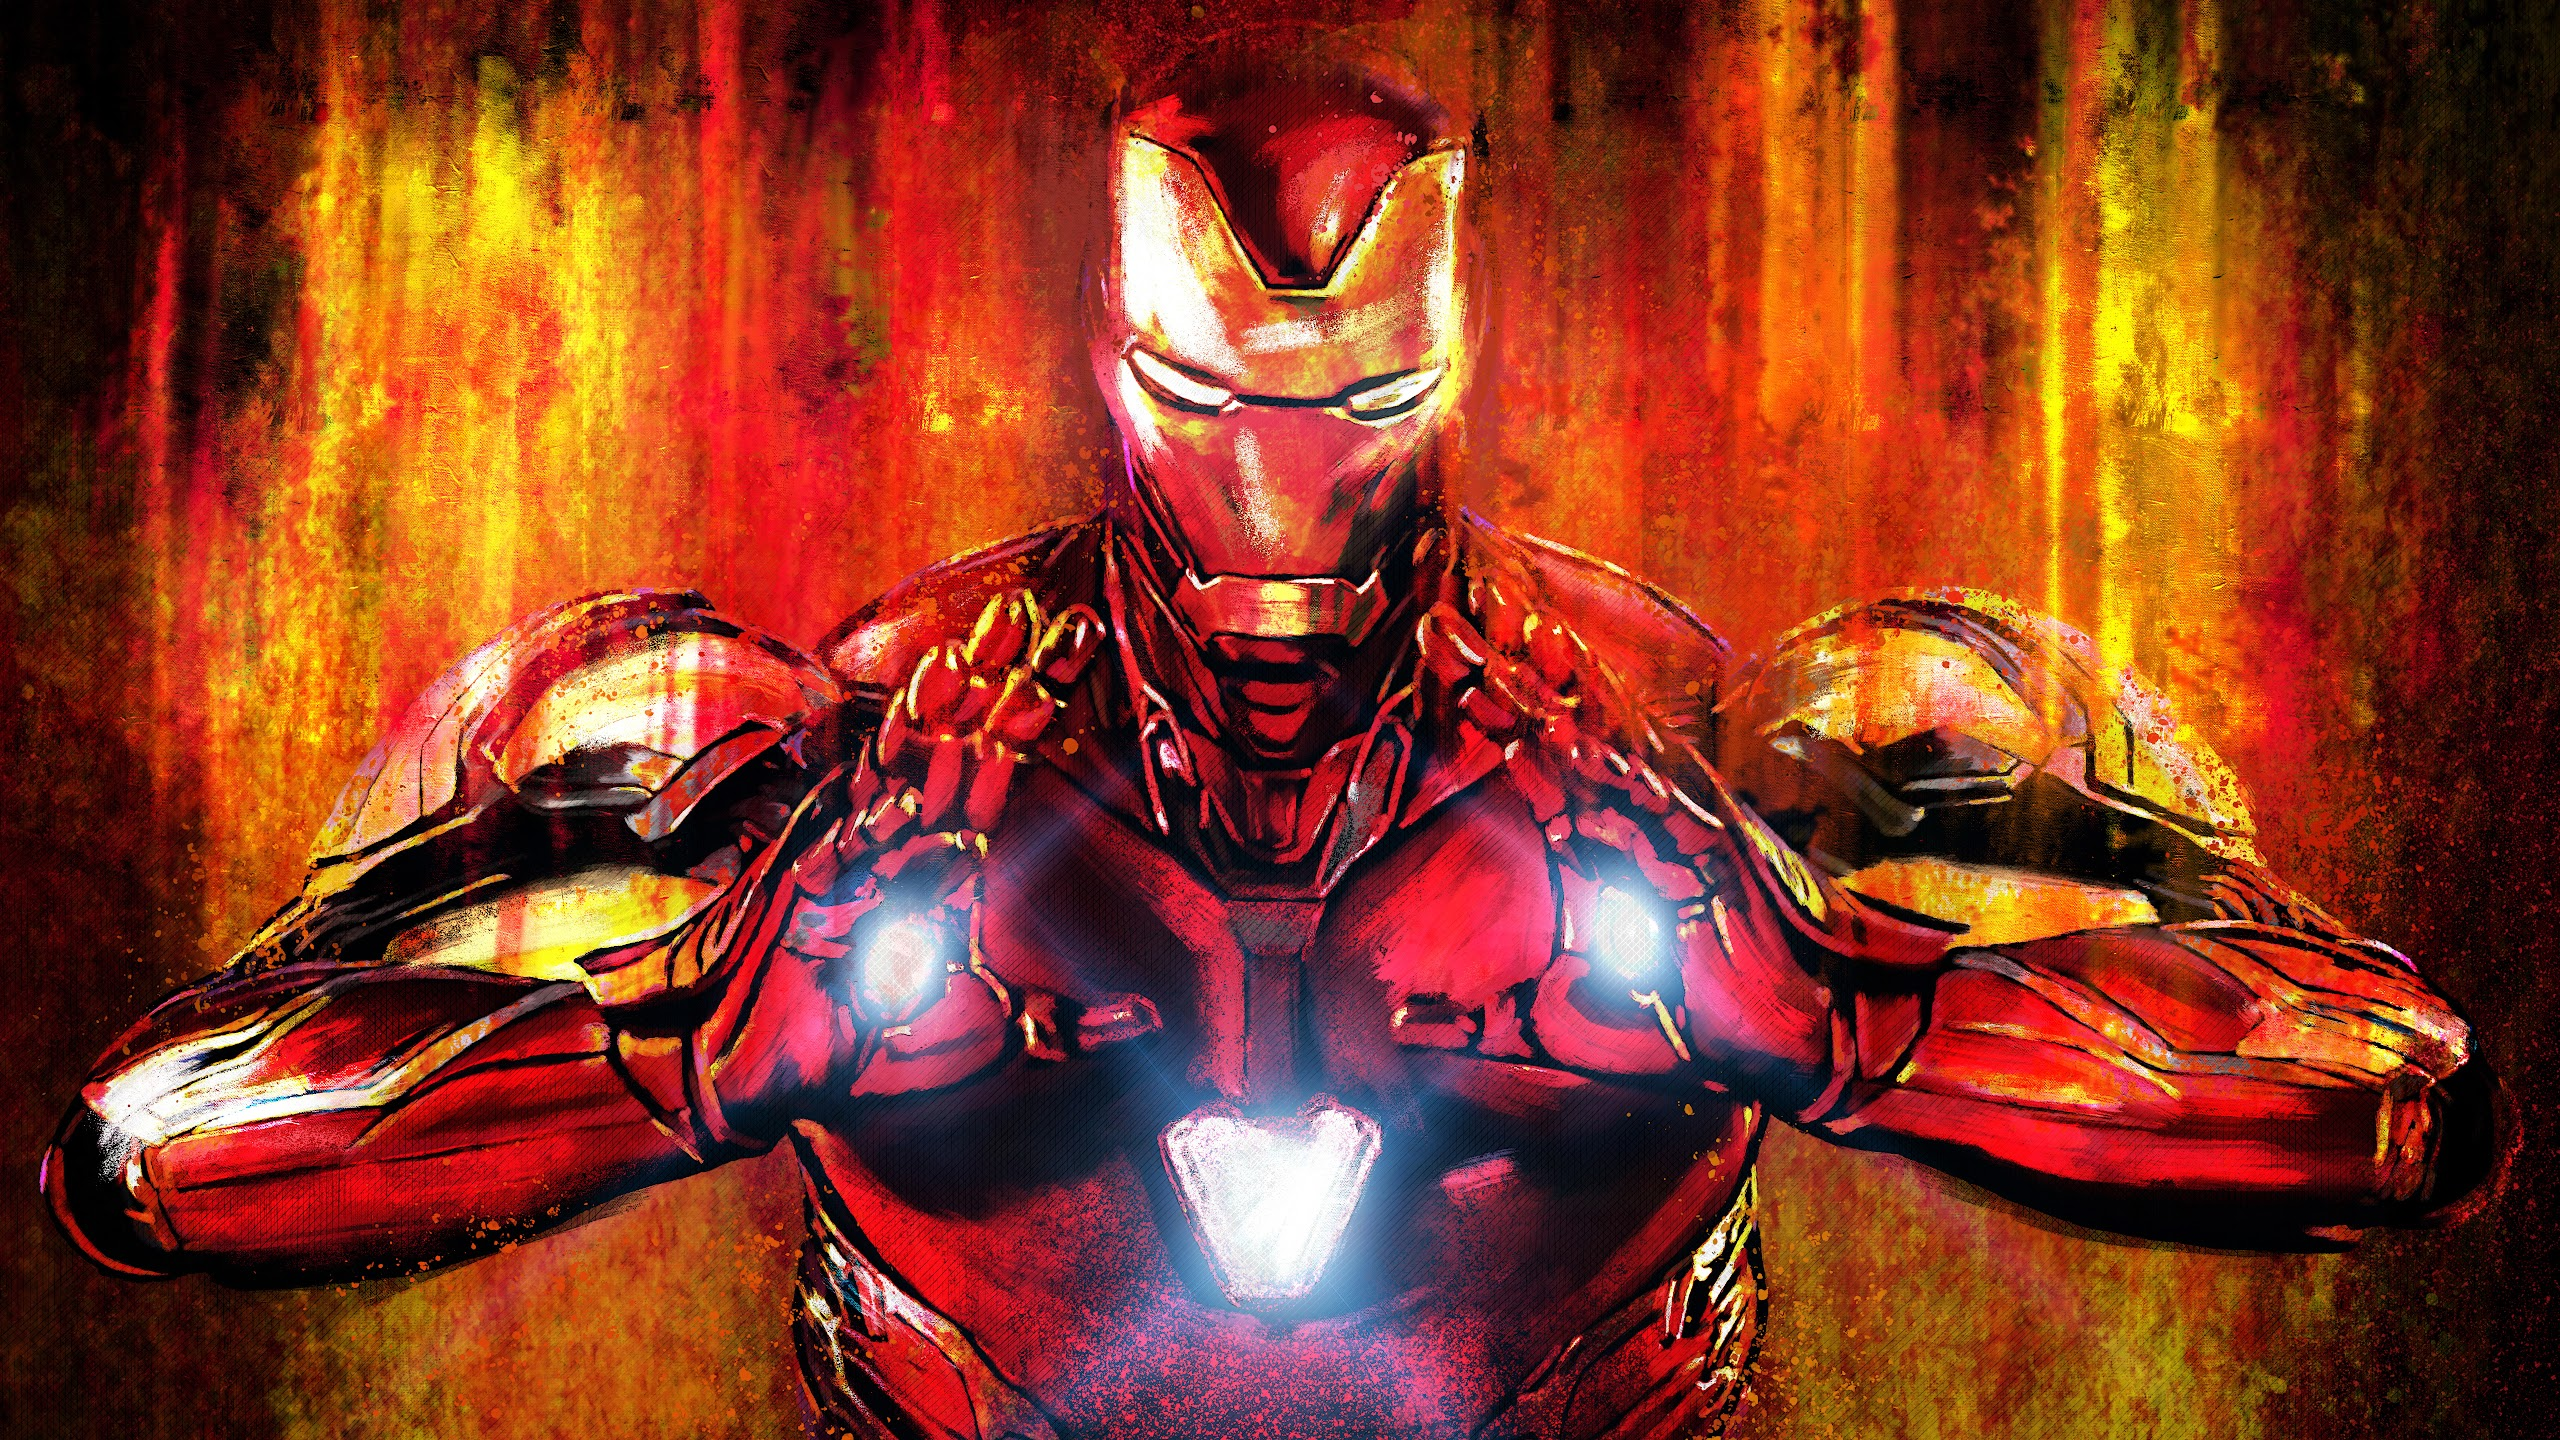 Avengers Endgame Iron Man 8k Wallpaper 148